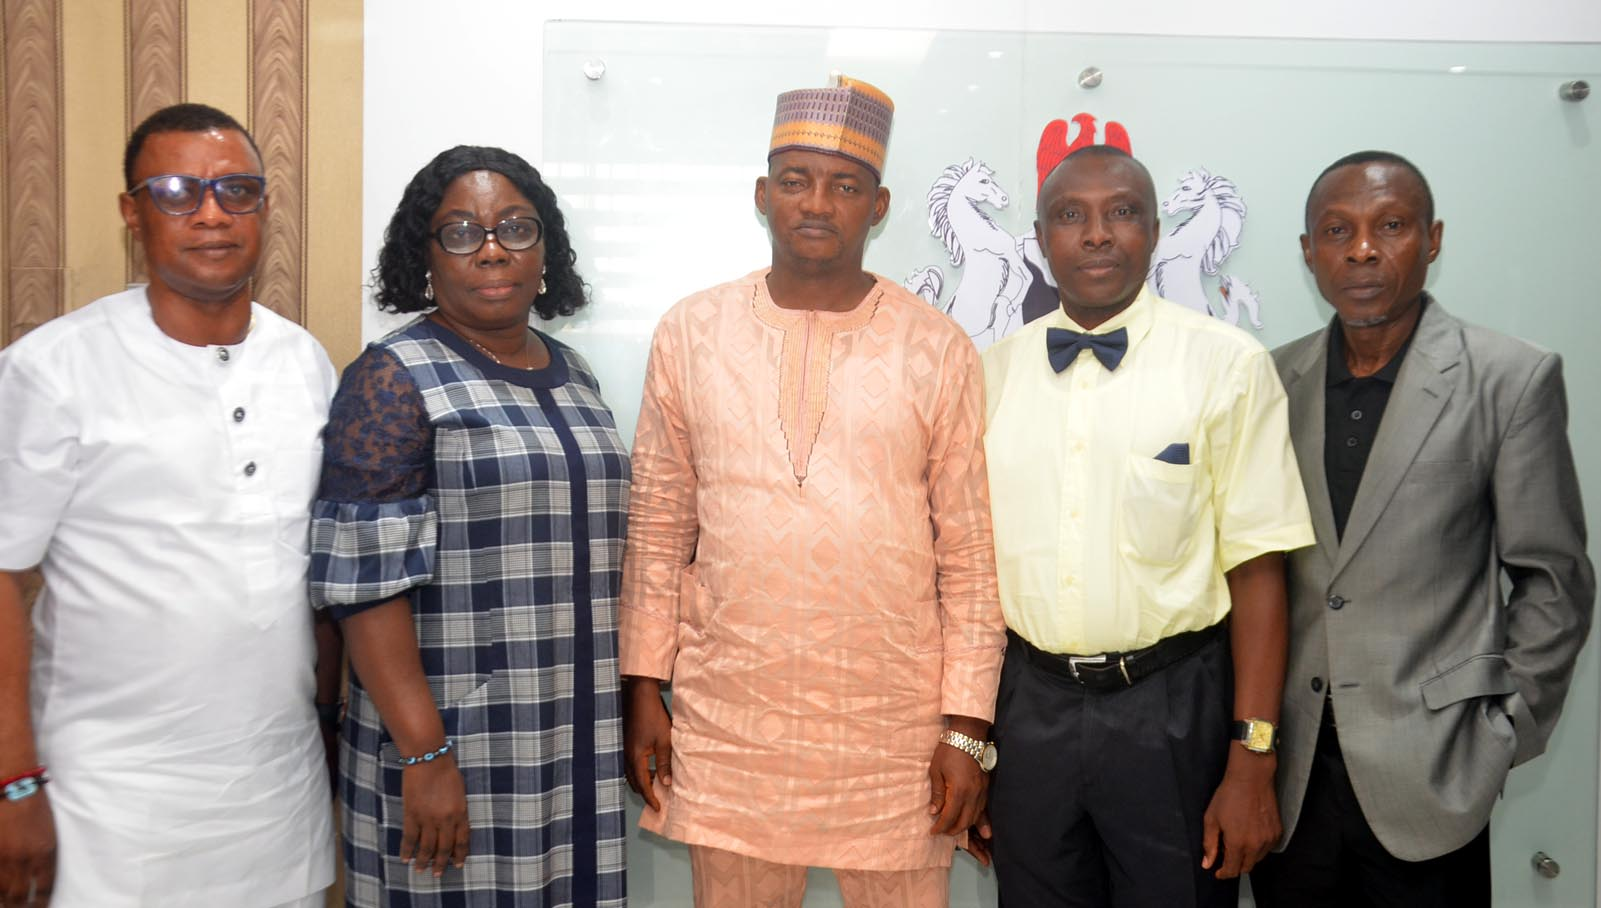 L-R: Mr. Goddie Ofose, Immediate past Chairman, Brand Journalists Association of Nigeria (BJAN), Mrs. Ijedi Iyoha, Deputy Director Regulations, APCON, Dr. Olalekan Fadolapo, Registrar/CEO, Advertising Practitioners Council of Nigeria (APCON), Mr. Princewill Ekwujuru, Chairman, BJAN and Mr. Joe-Eugene Onuorah, Deputy Director, Professional Development, APCON during BJAN Executives courtesy visit to APCON Registrar in Lagos recently.